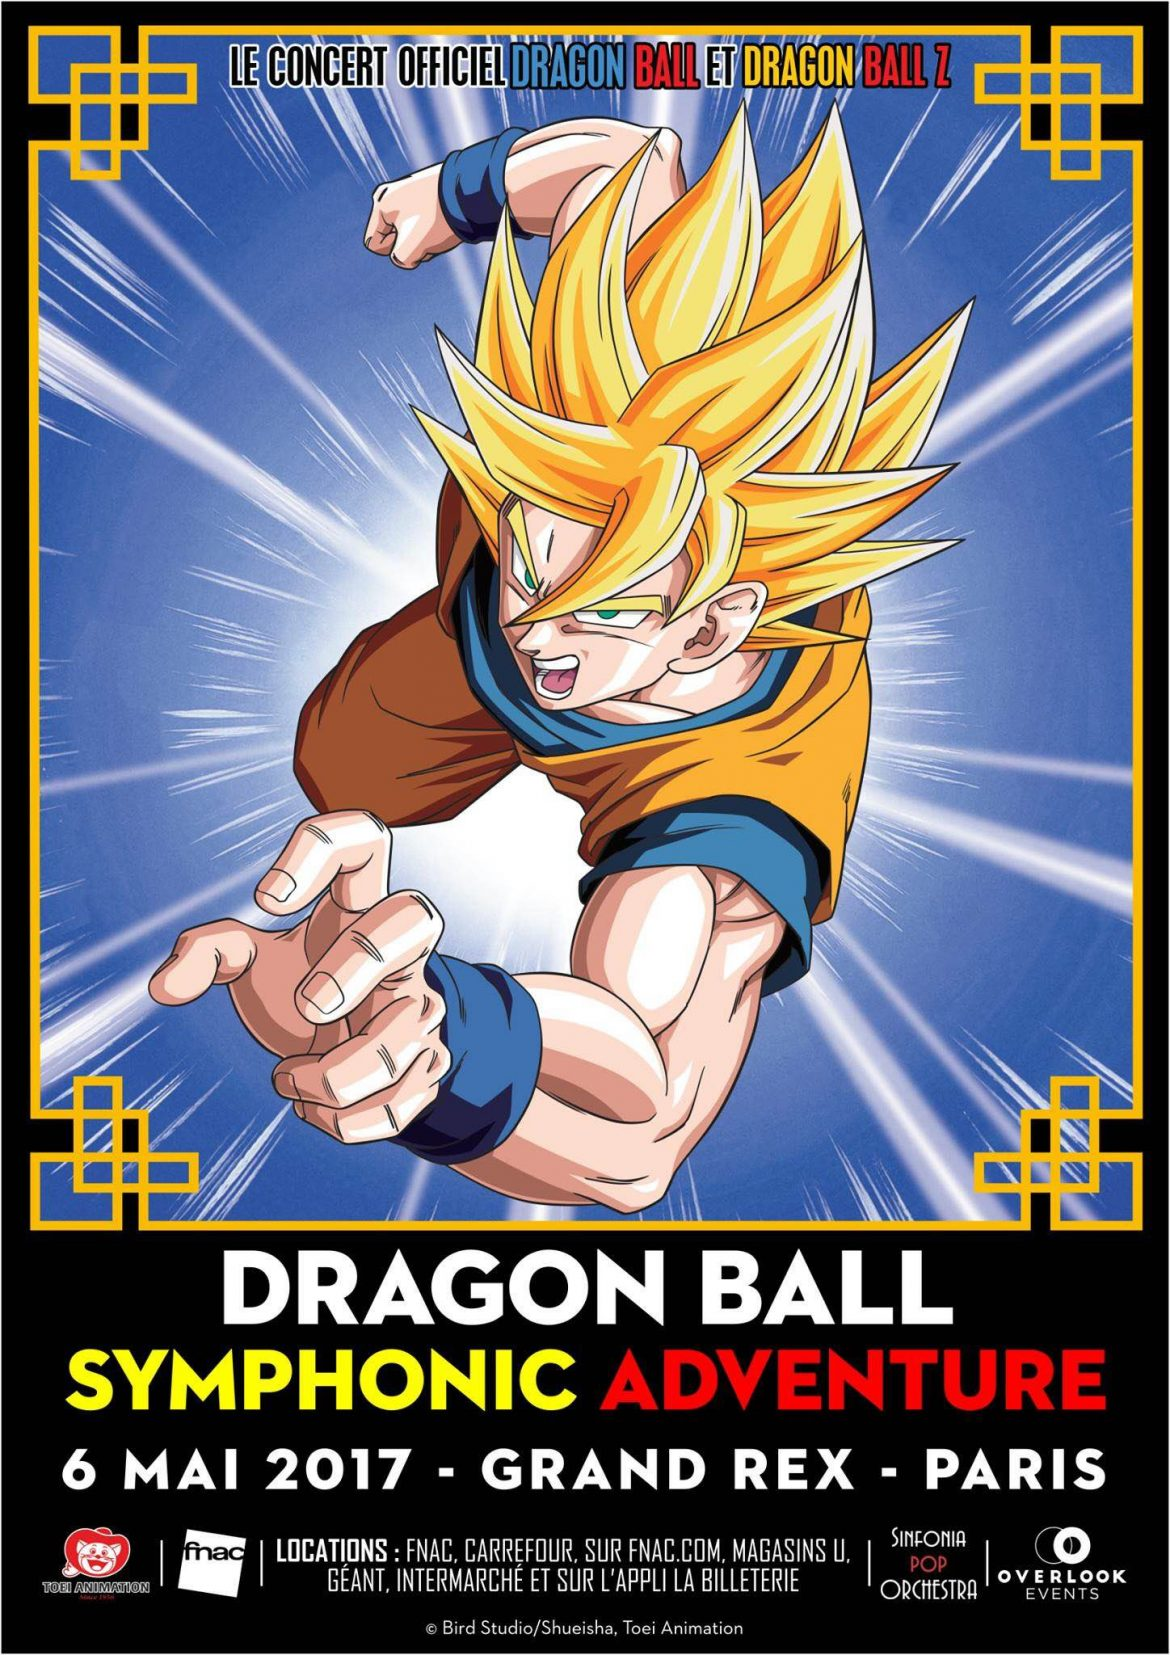 DRAGON-BALL-SYMPHONIC-ADVENTURE